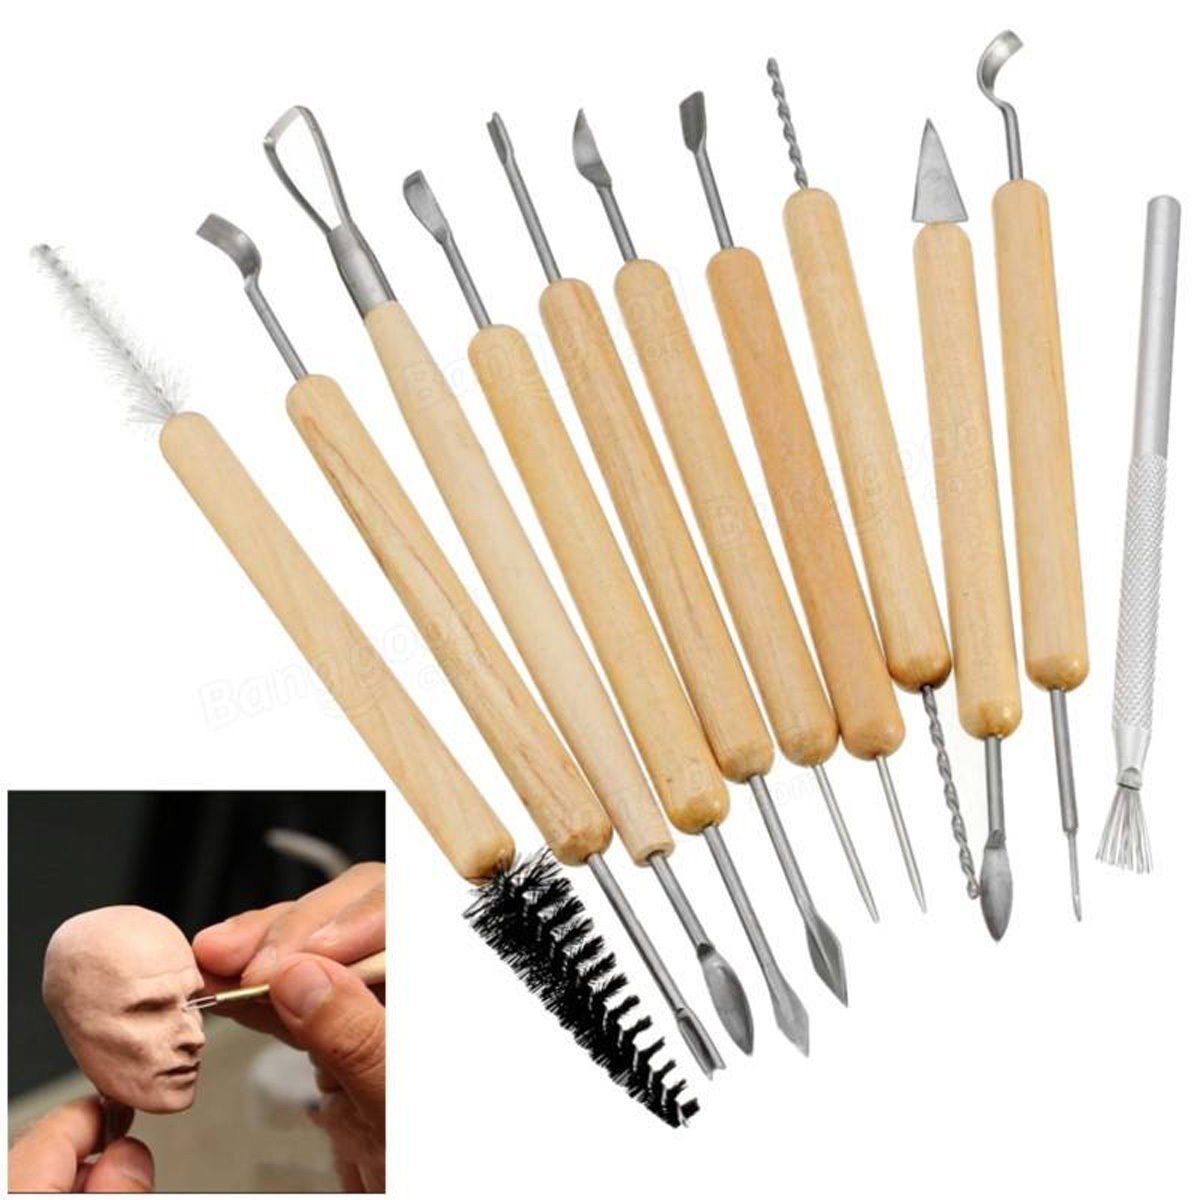 CLAY TOOLS SET 11 PIECES - MULTI-PURPOSE TOOLS FOR SHAPING AND SCULPTING